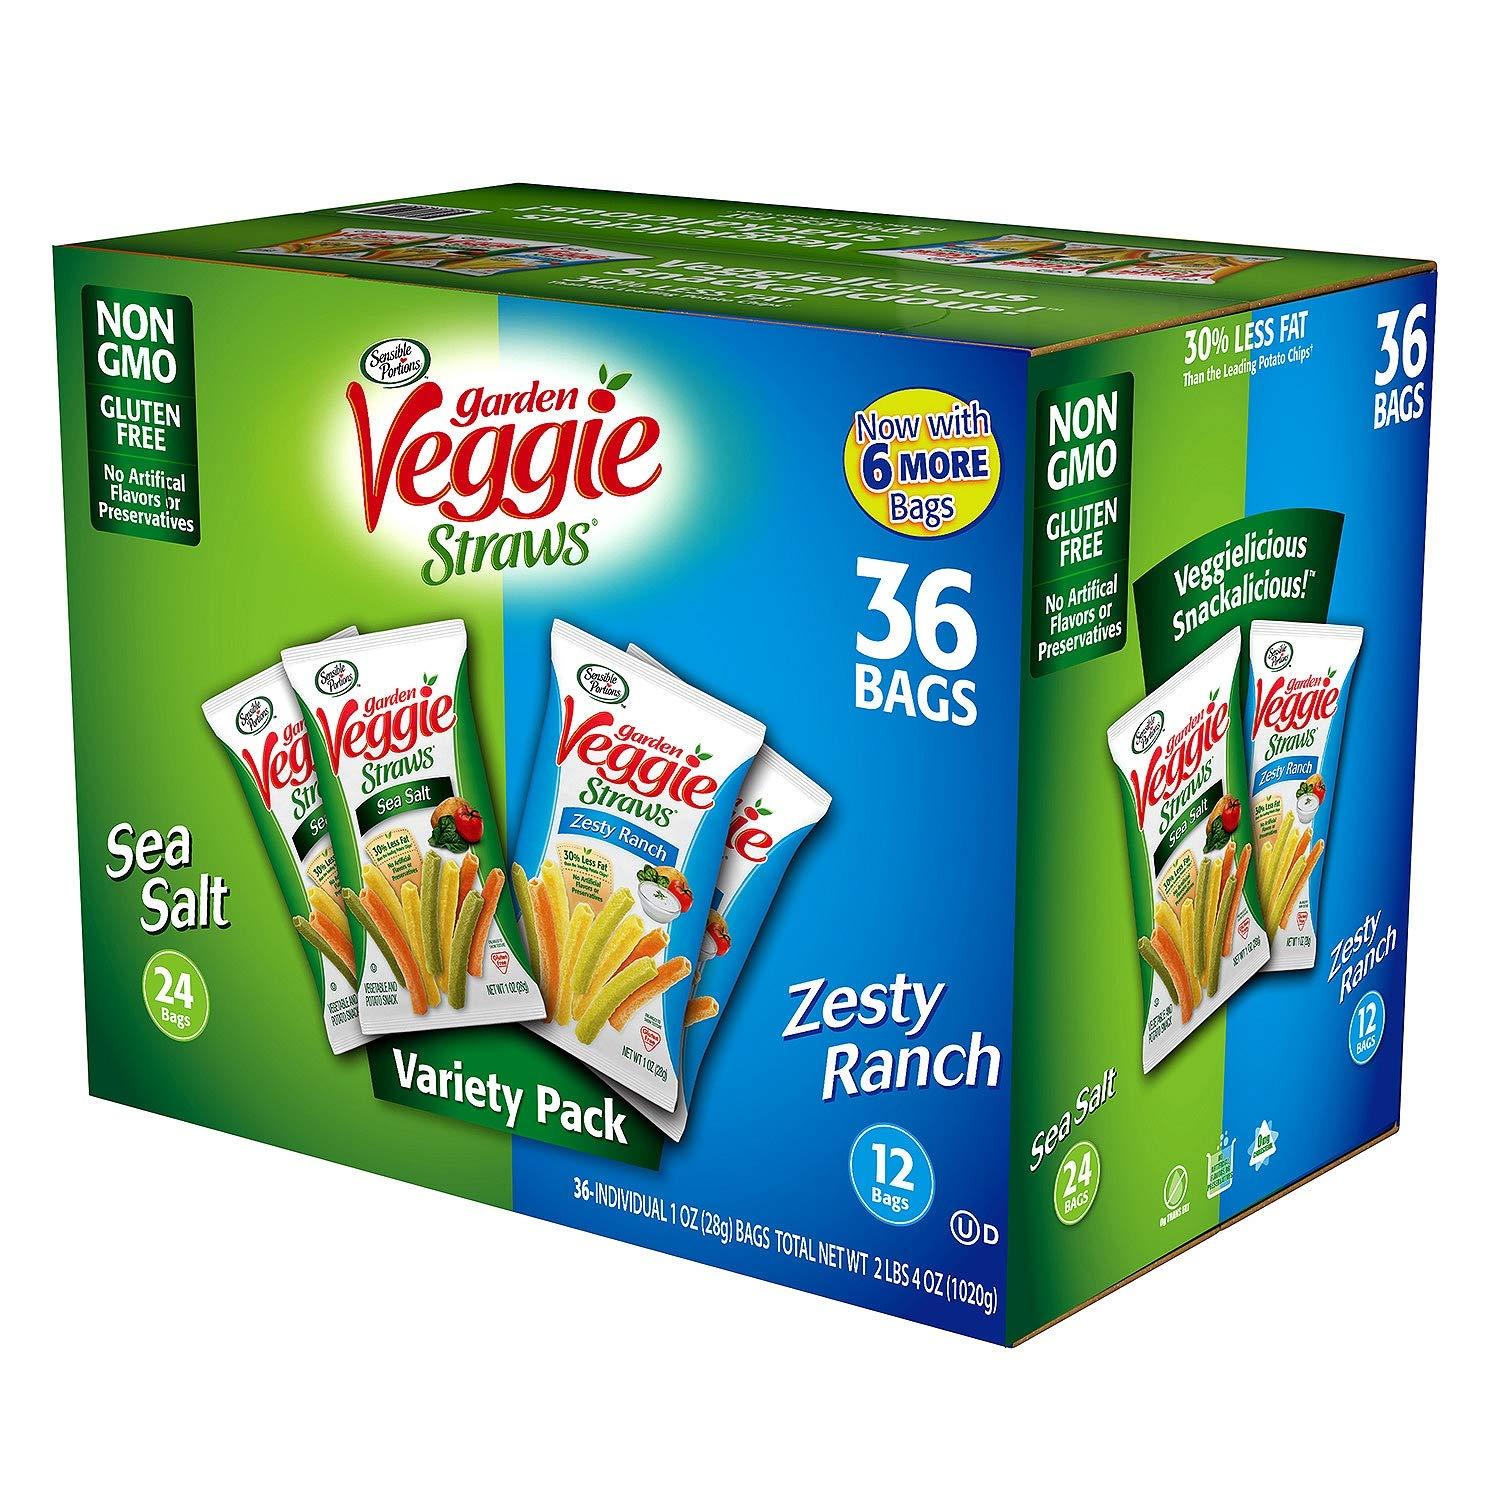 Sensible Portions Garden Veggie Straws, Variety Pack, 24 Pack Sea Salt, 12 Pack Zesty Ranch, Total 36 Count (Pack of 3)